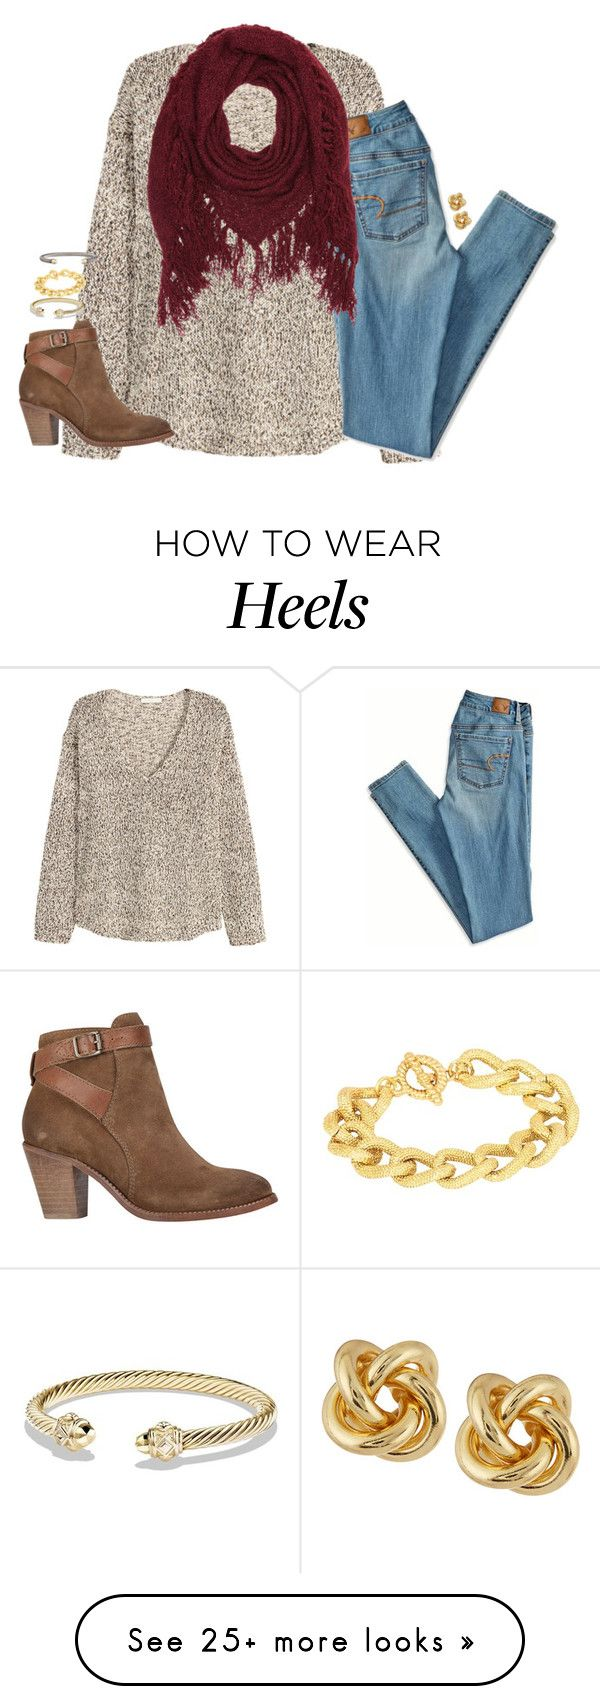 """""""hellooooo"""" by kaley-ii on Polyvore featuring H&M, American Eagle Outfitters, Charlotte Russe, H by Hudson, David Yurman, Adele Marie and R.J. Graziano"""